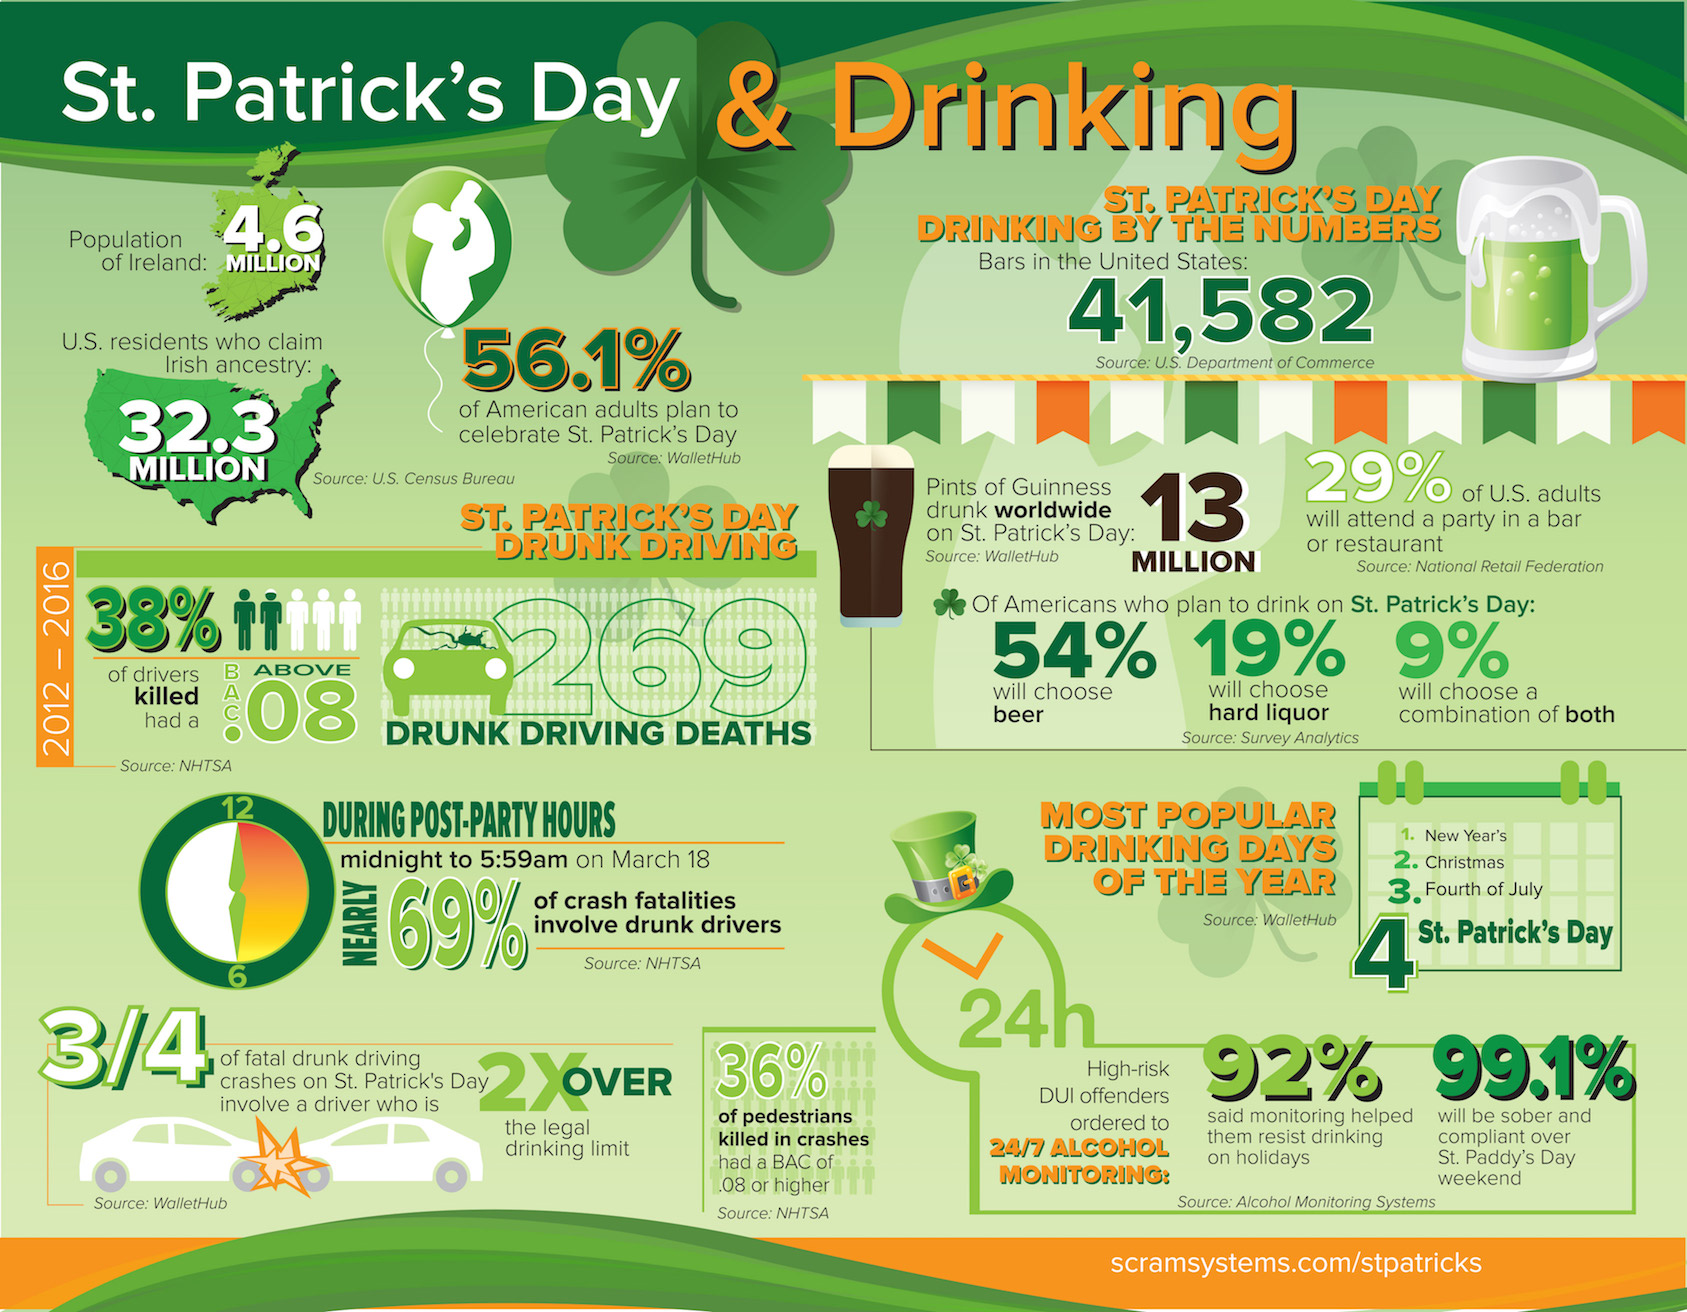 st-patricks-day-drinking-infographic-2018-small